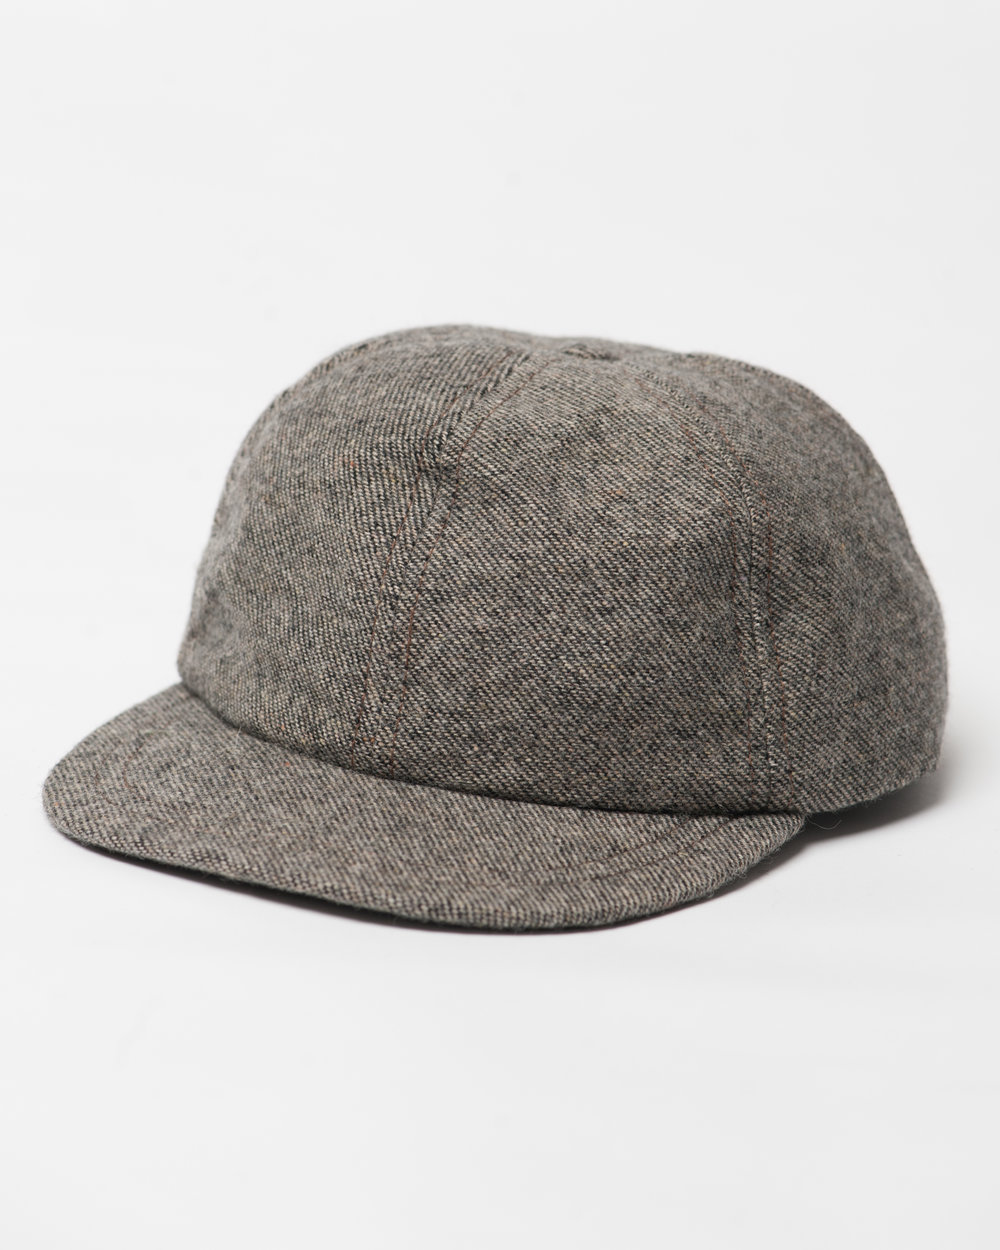 Kids Brown Black Twill Wool Cap Front FW17.jpg